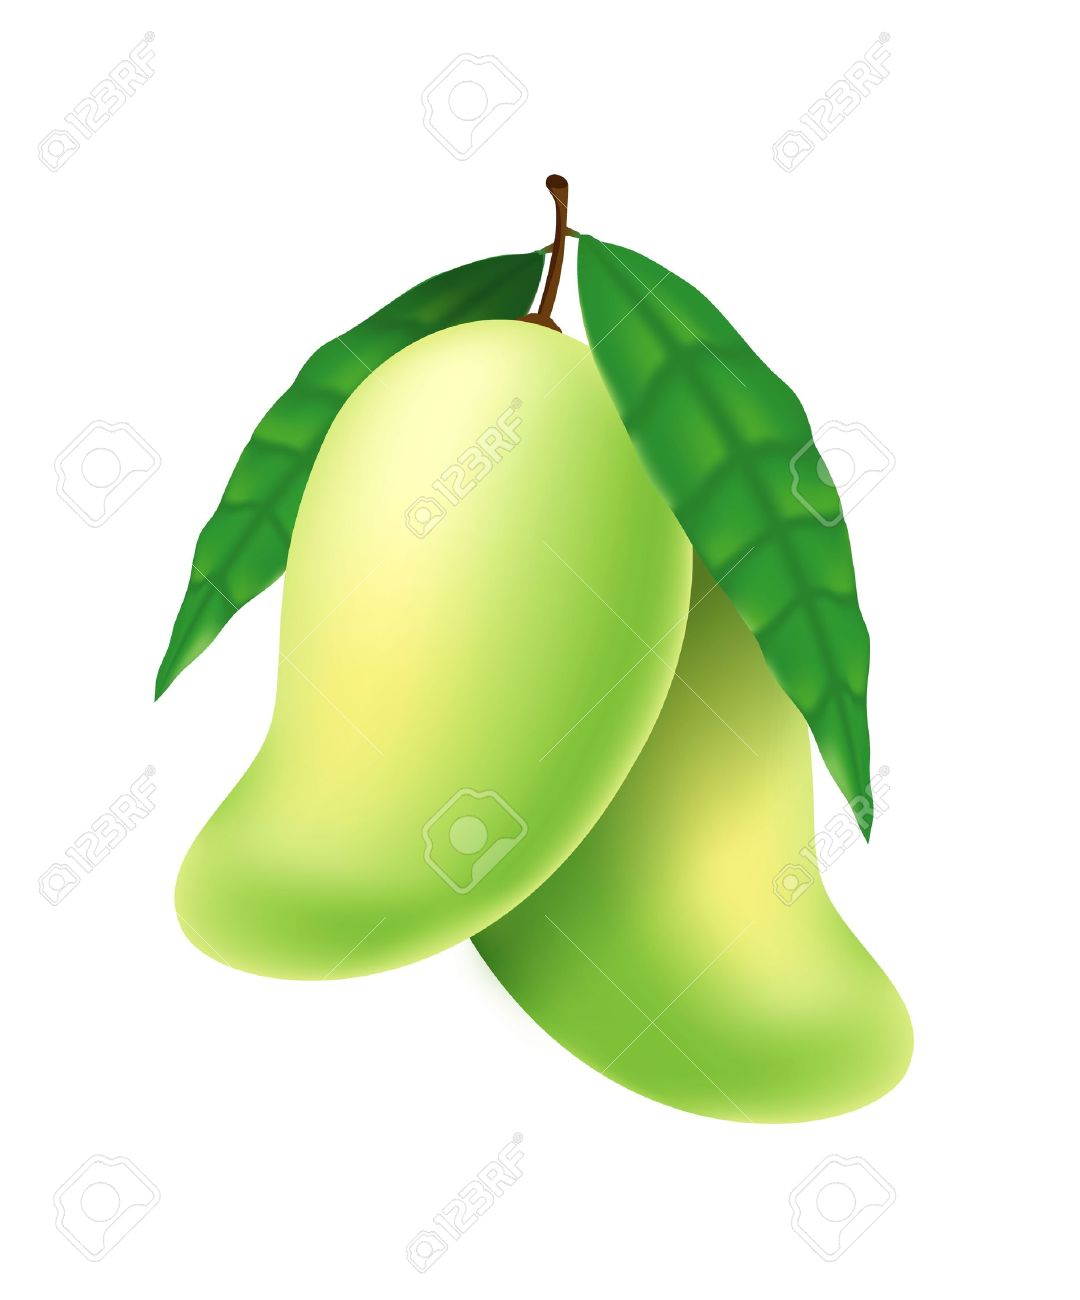 Mango Clipart | Free download best Mango Clipart on ...